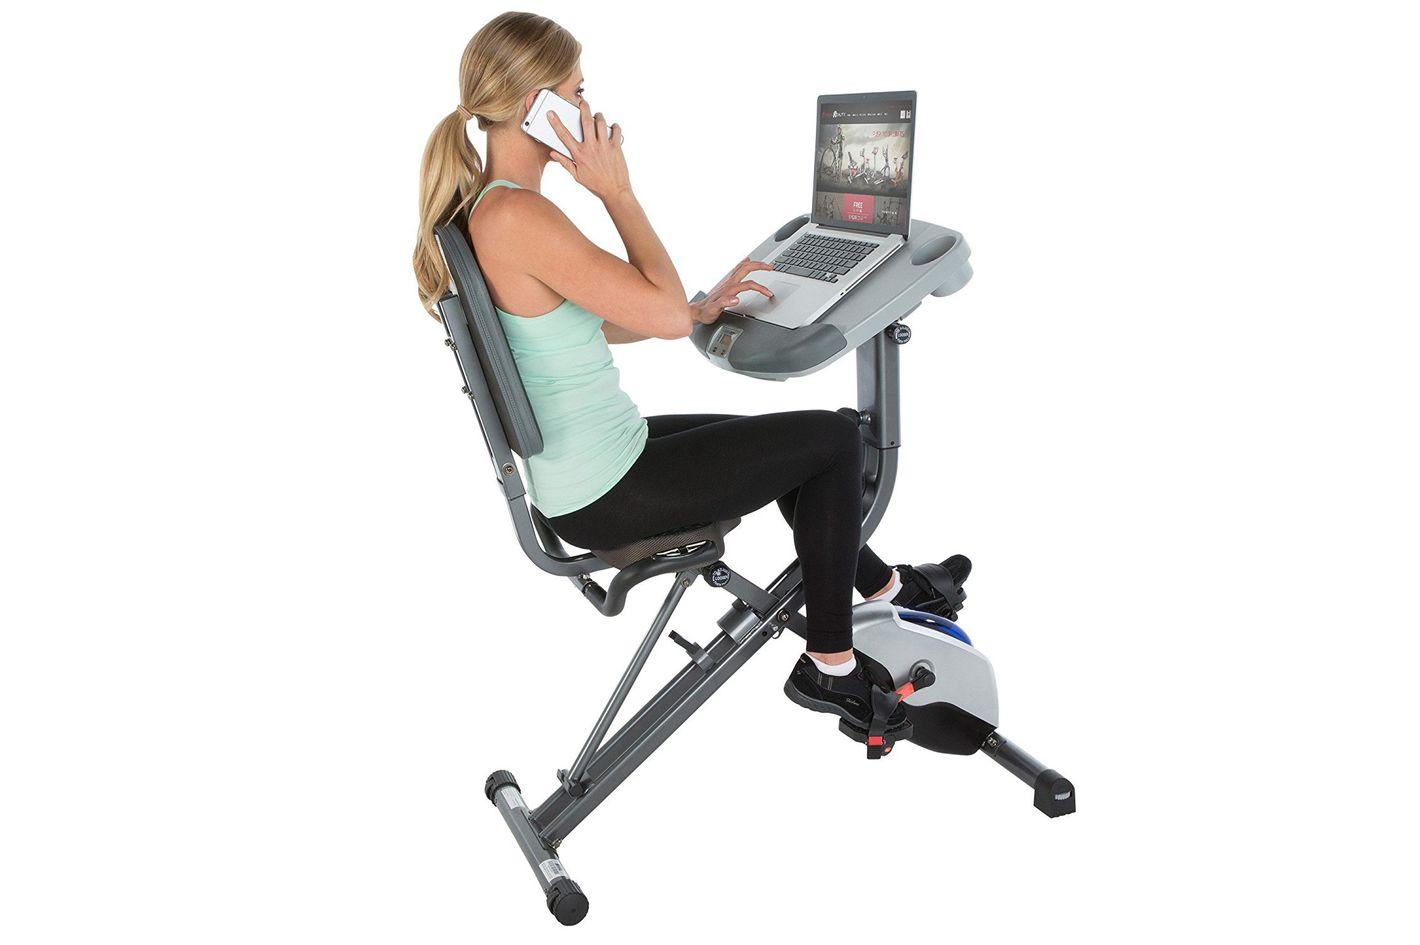 Exerpeutic Workfit 1000 Desk Station Folding Semi-Recumbent Exercise Bike